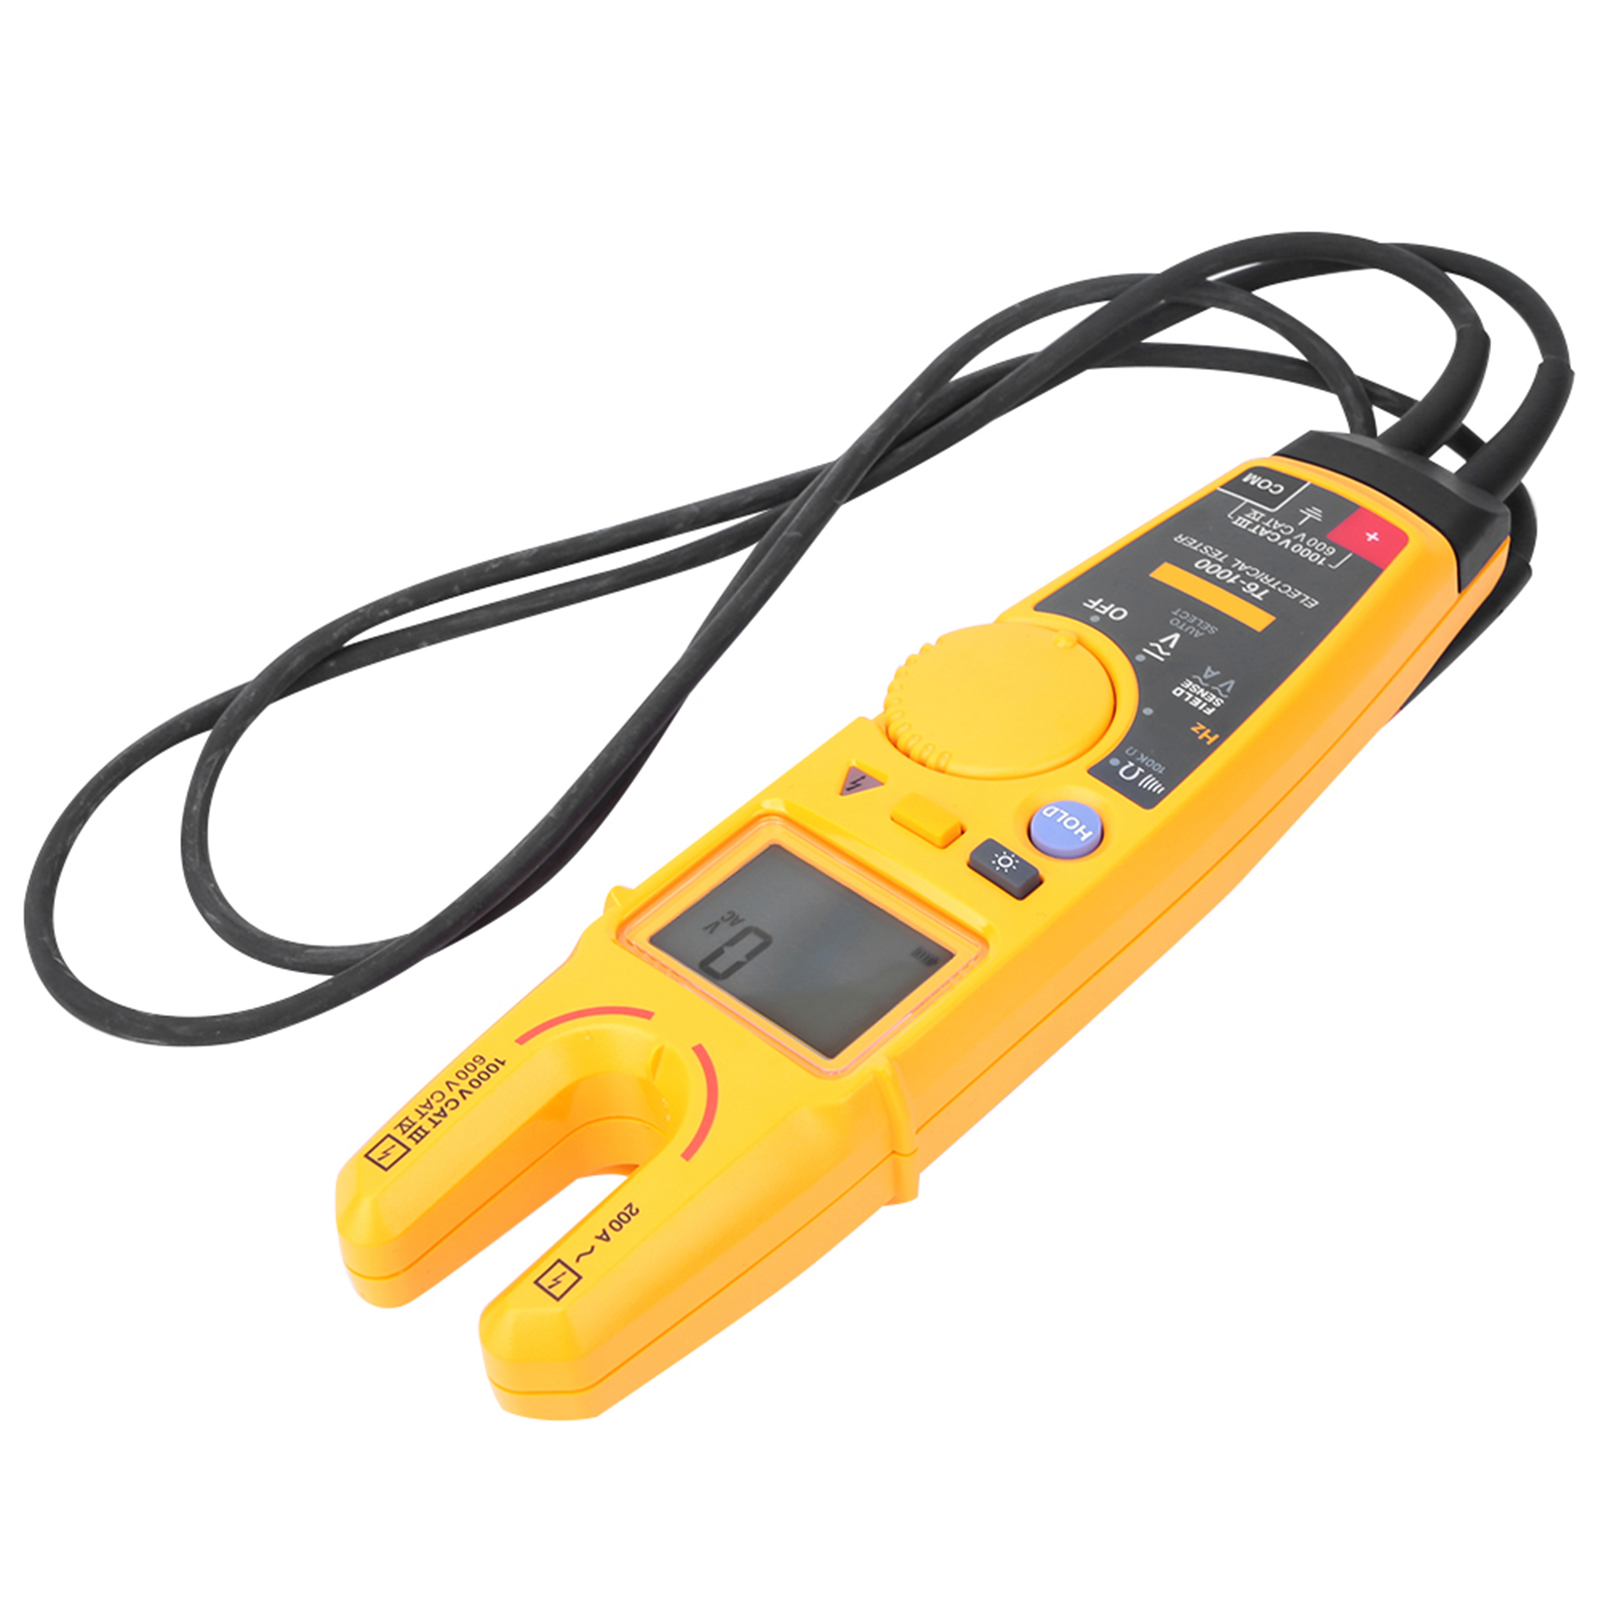 Fluke-T6-600-T6-1000-Electrical-Tester-Non-contact-Voltage-Clamp-Tester miniature 18